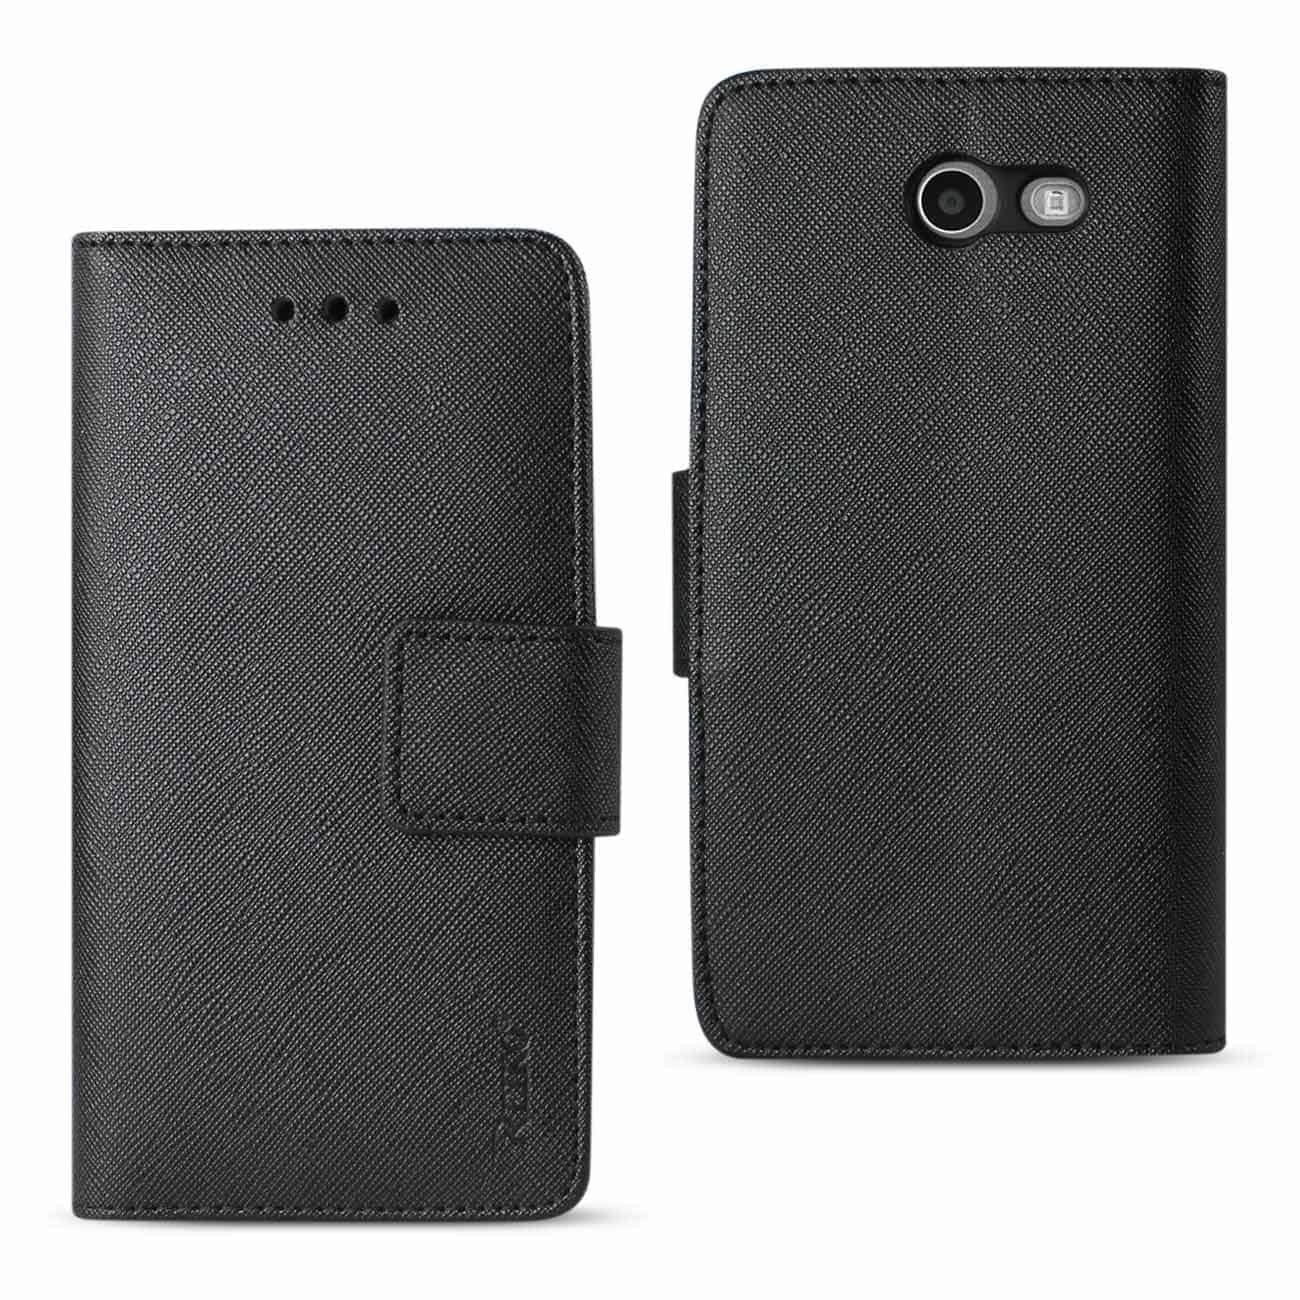 2017 SAMSUNG GALAXY J3 EMERGE 3-IN-1 WALLET CASE IN BLACK